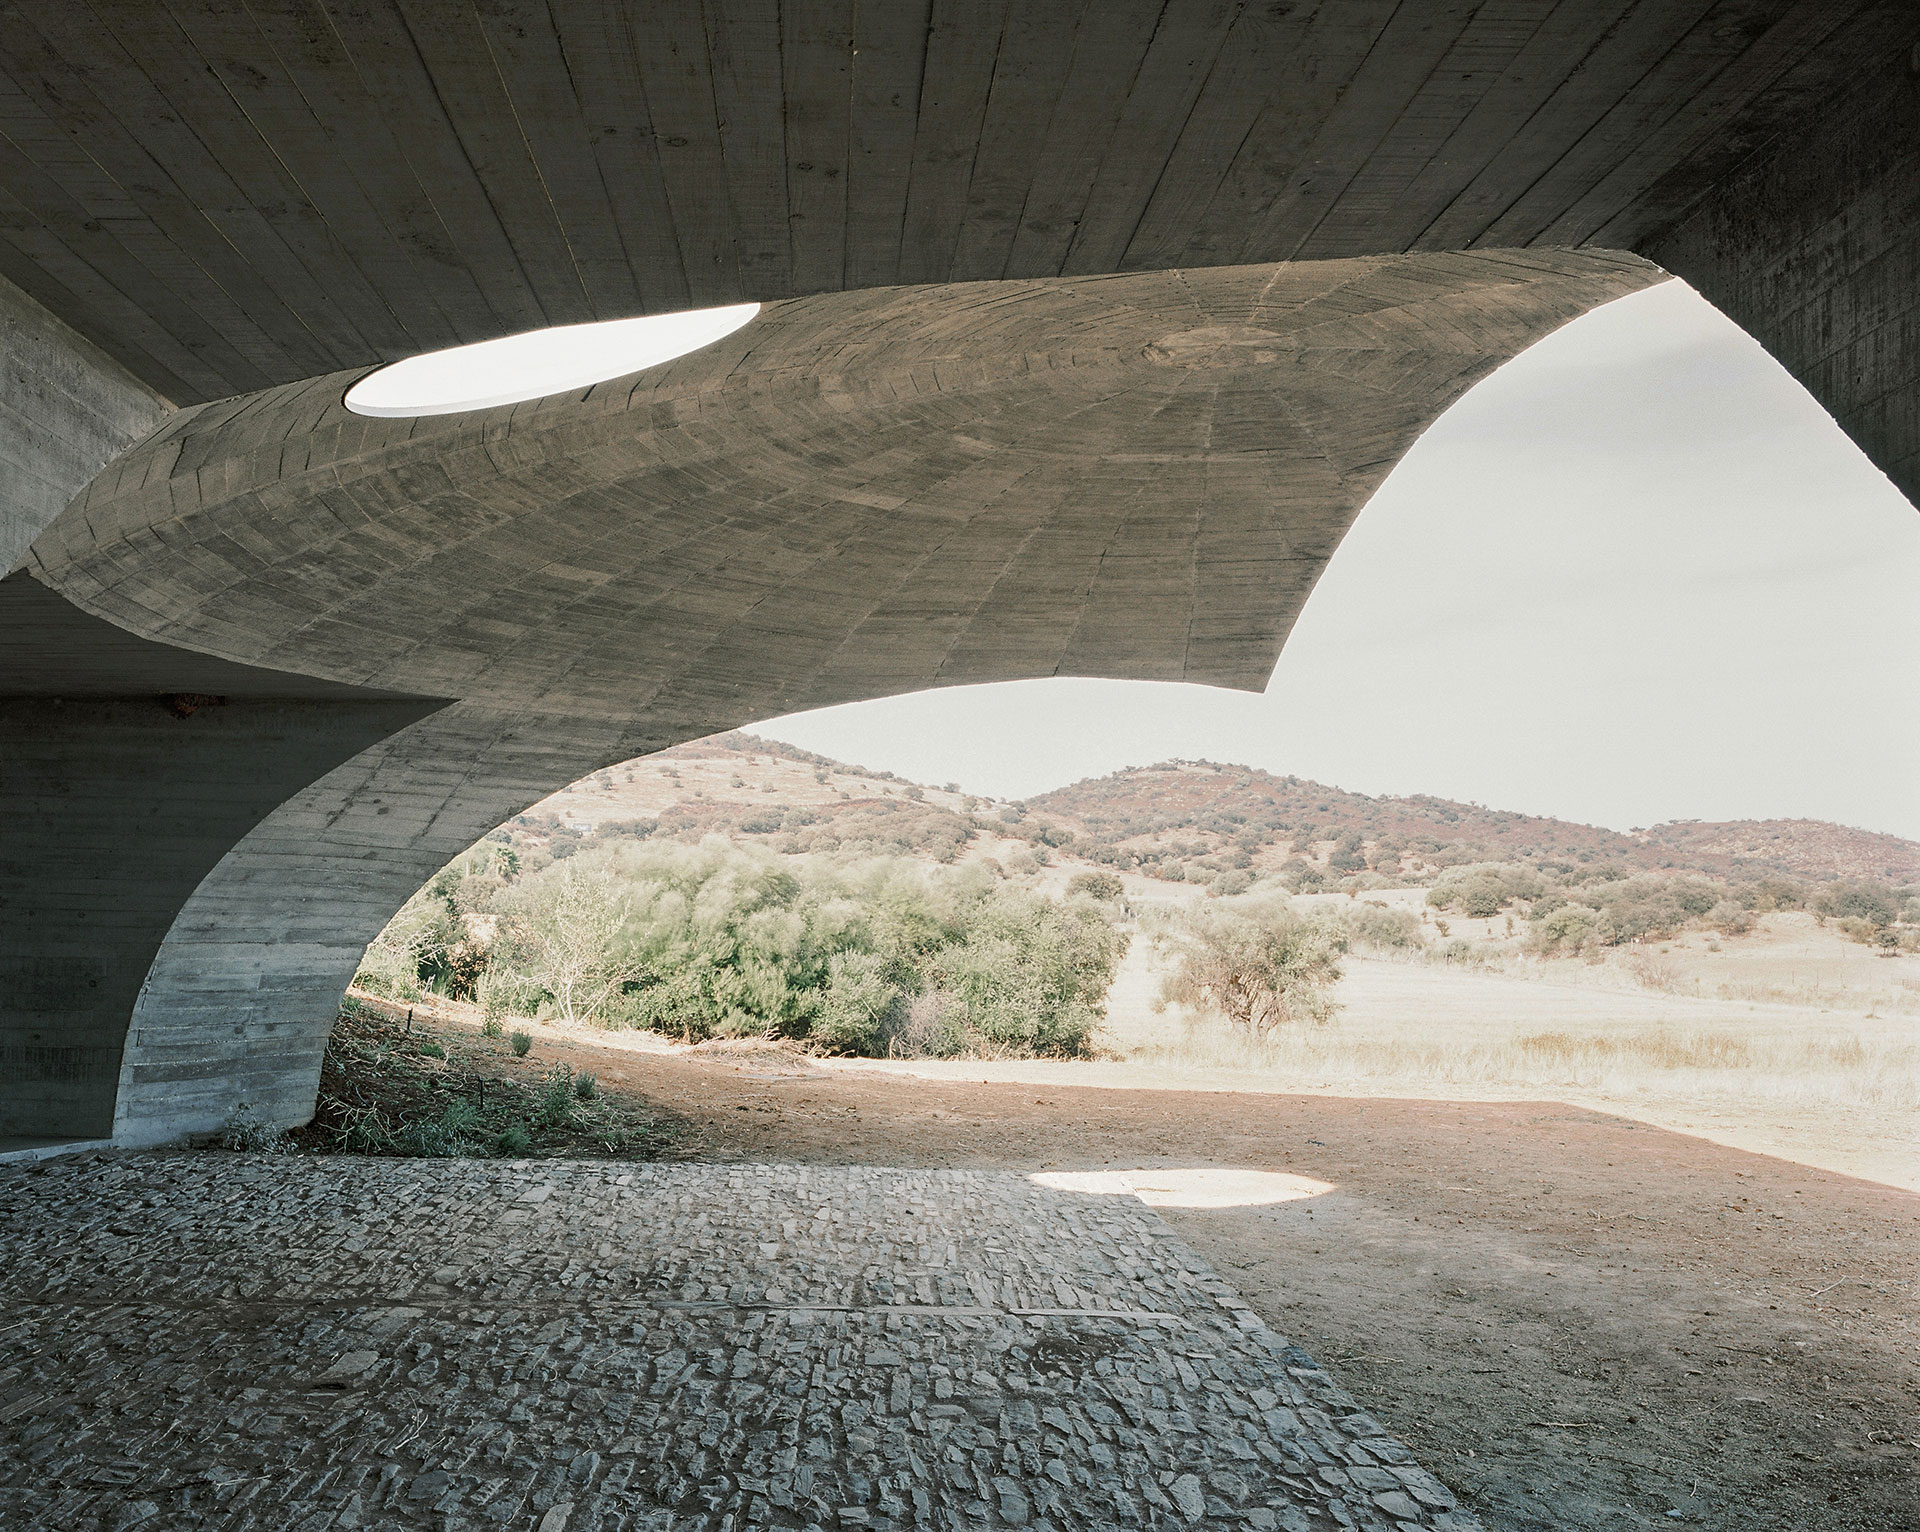 House in Monsaraz by Aires Mateus Architects. Photo by Rui Cardoso.